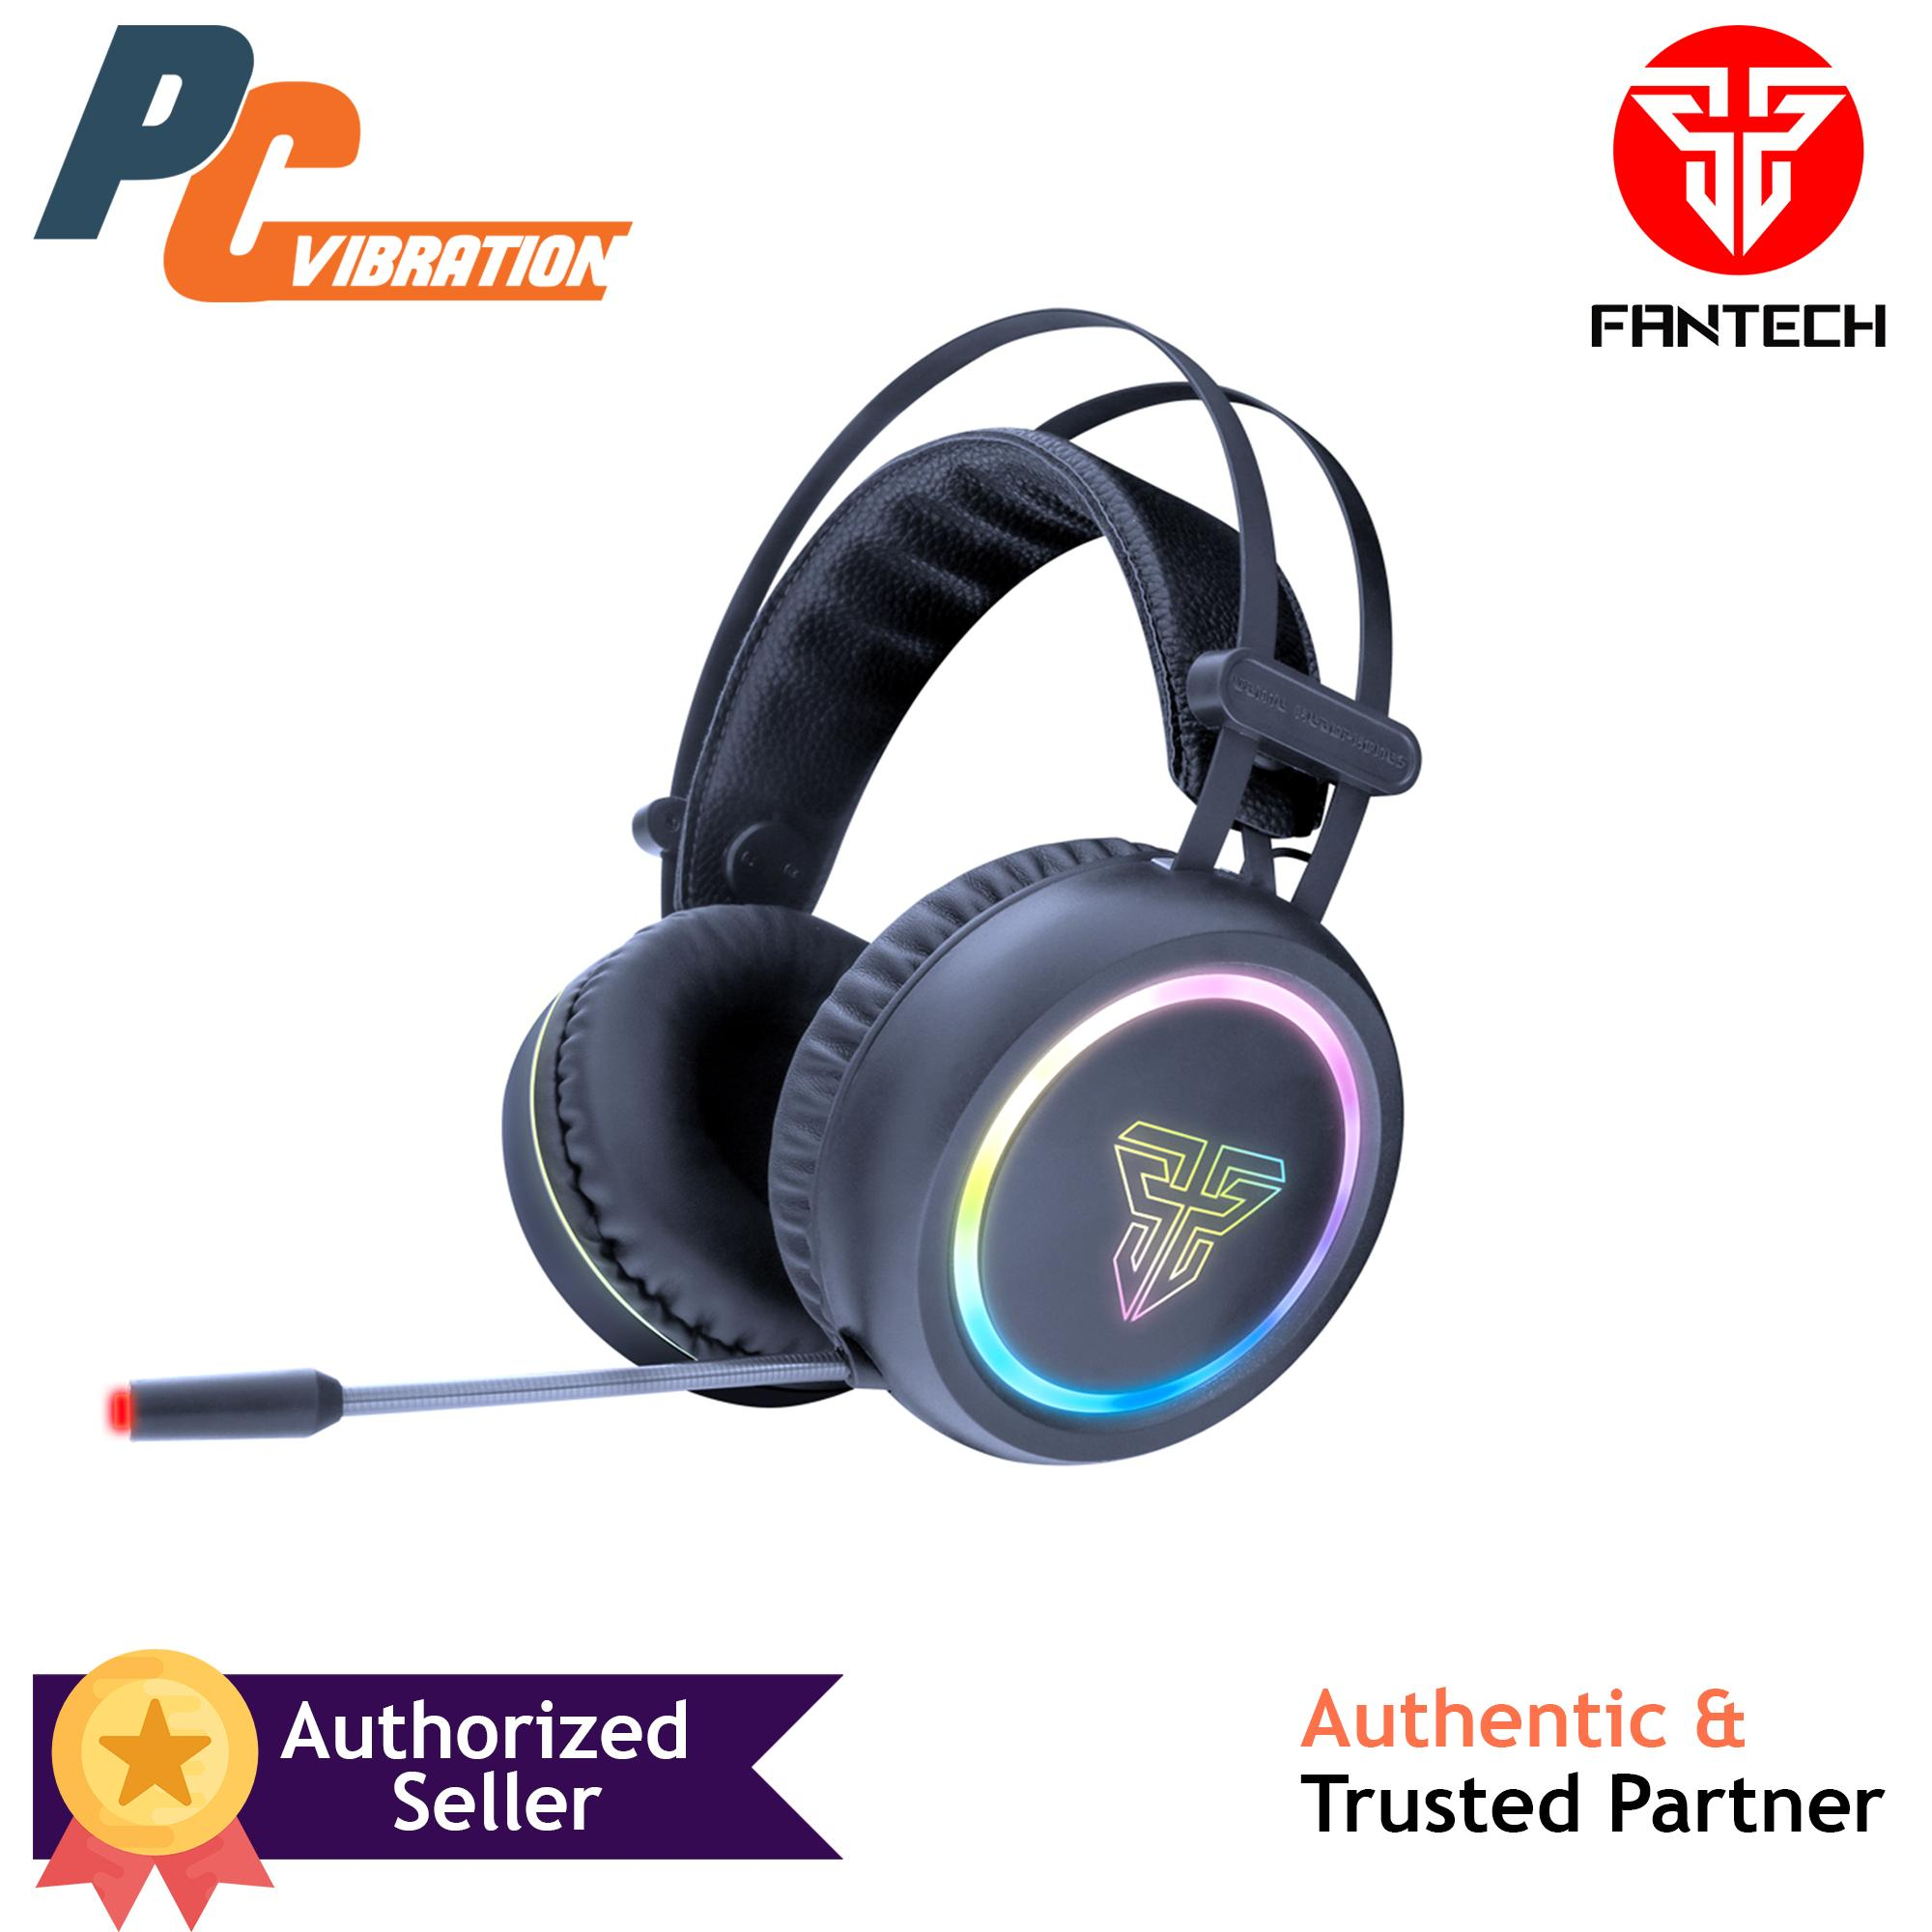 Gaming Headphones For Sale Prices Brands Fs Razer Kraken Pro V2 White Fantech Hg15 71 Virtual Surround Sound Great Bass Noise Cancelling Mic With Running Chroma Rgb Eq